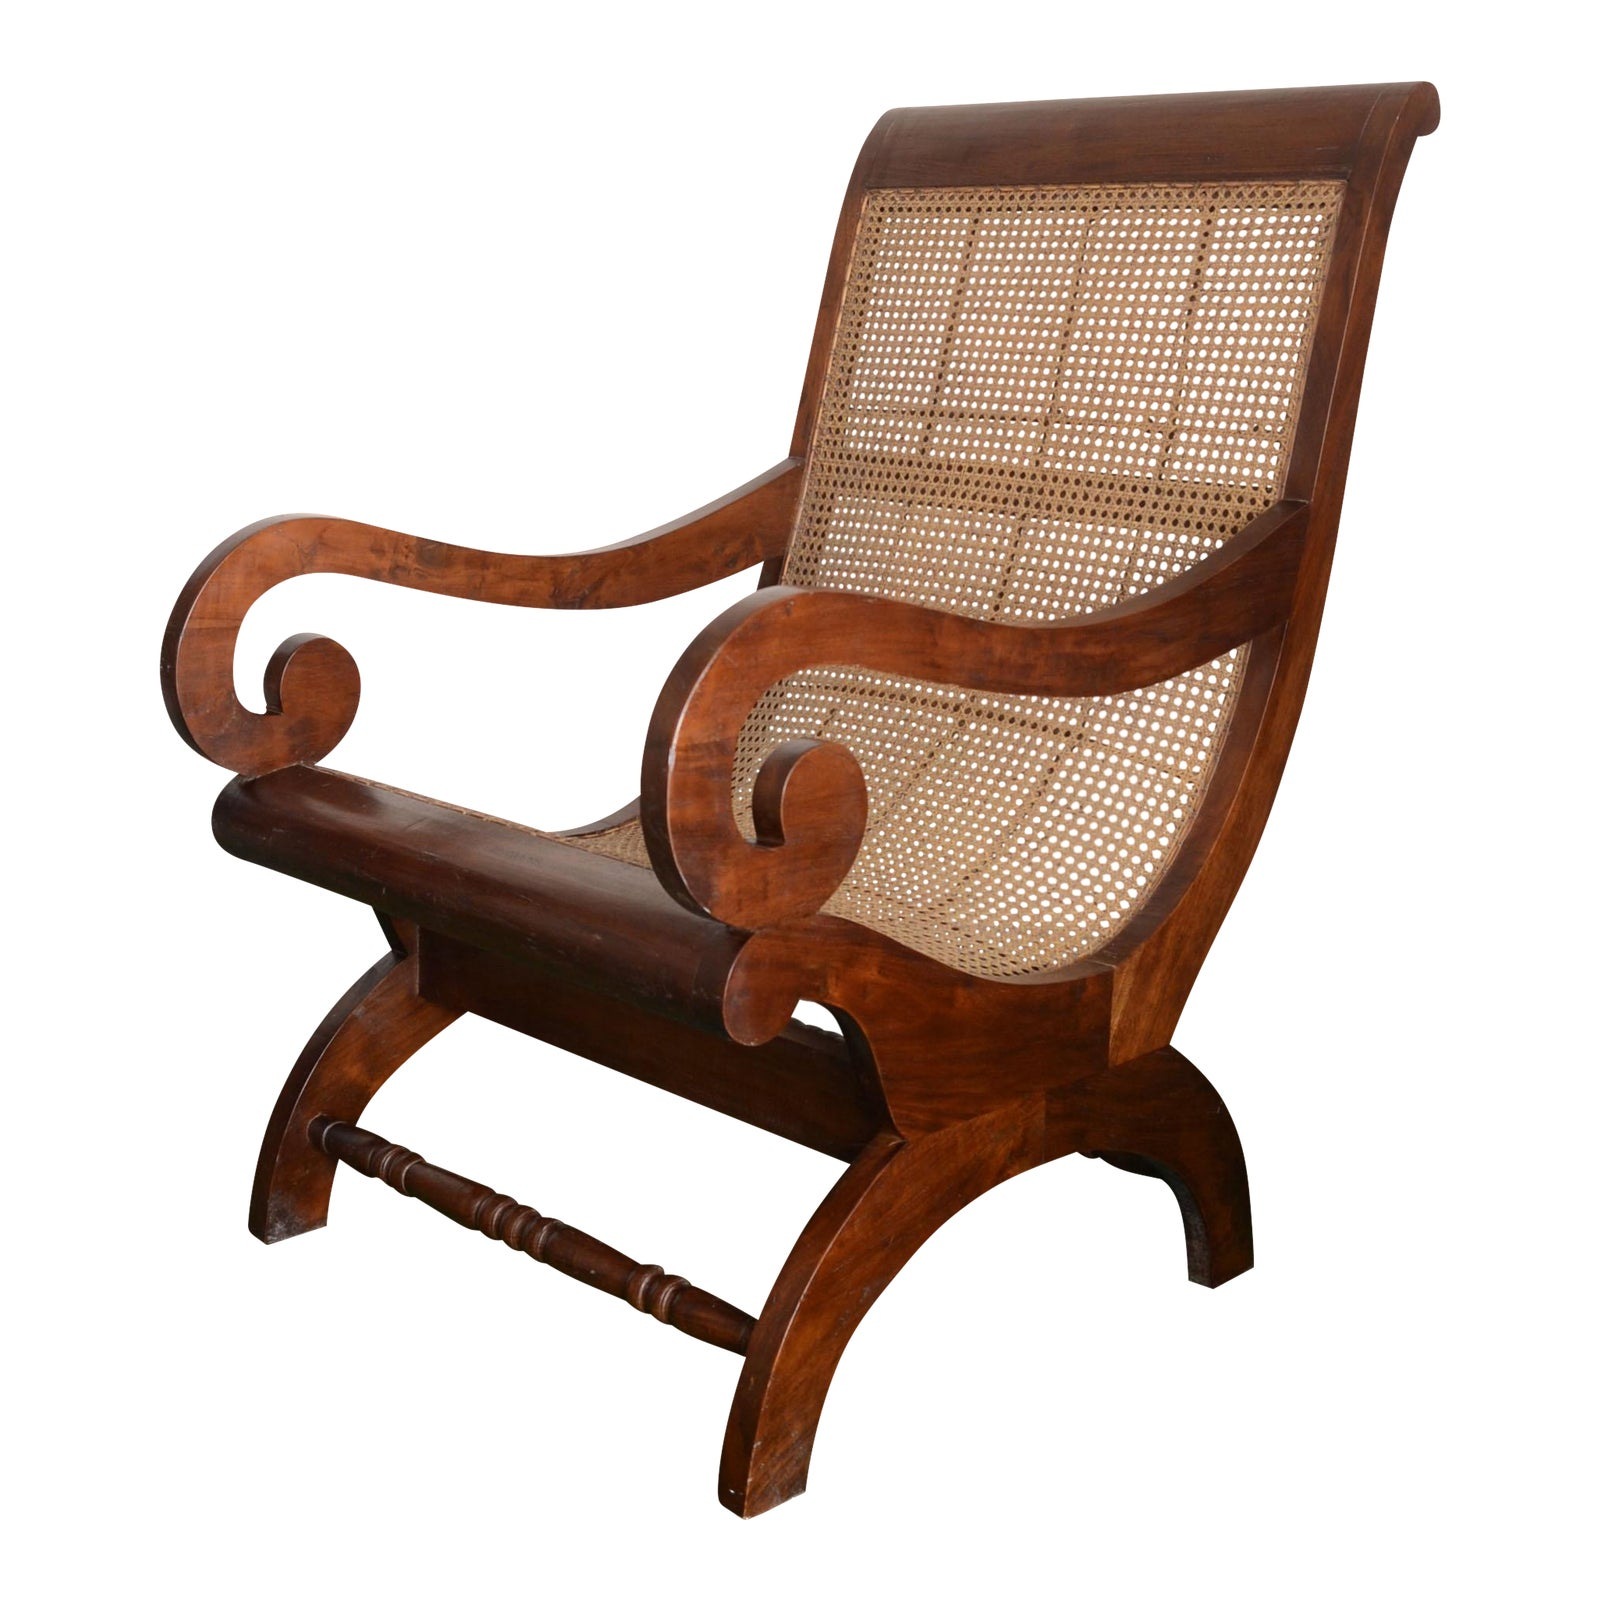 British Colonial Plantation Chair With Wicker Seat Chairish